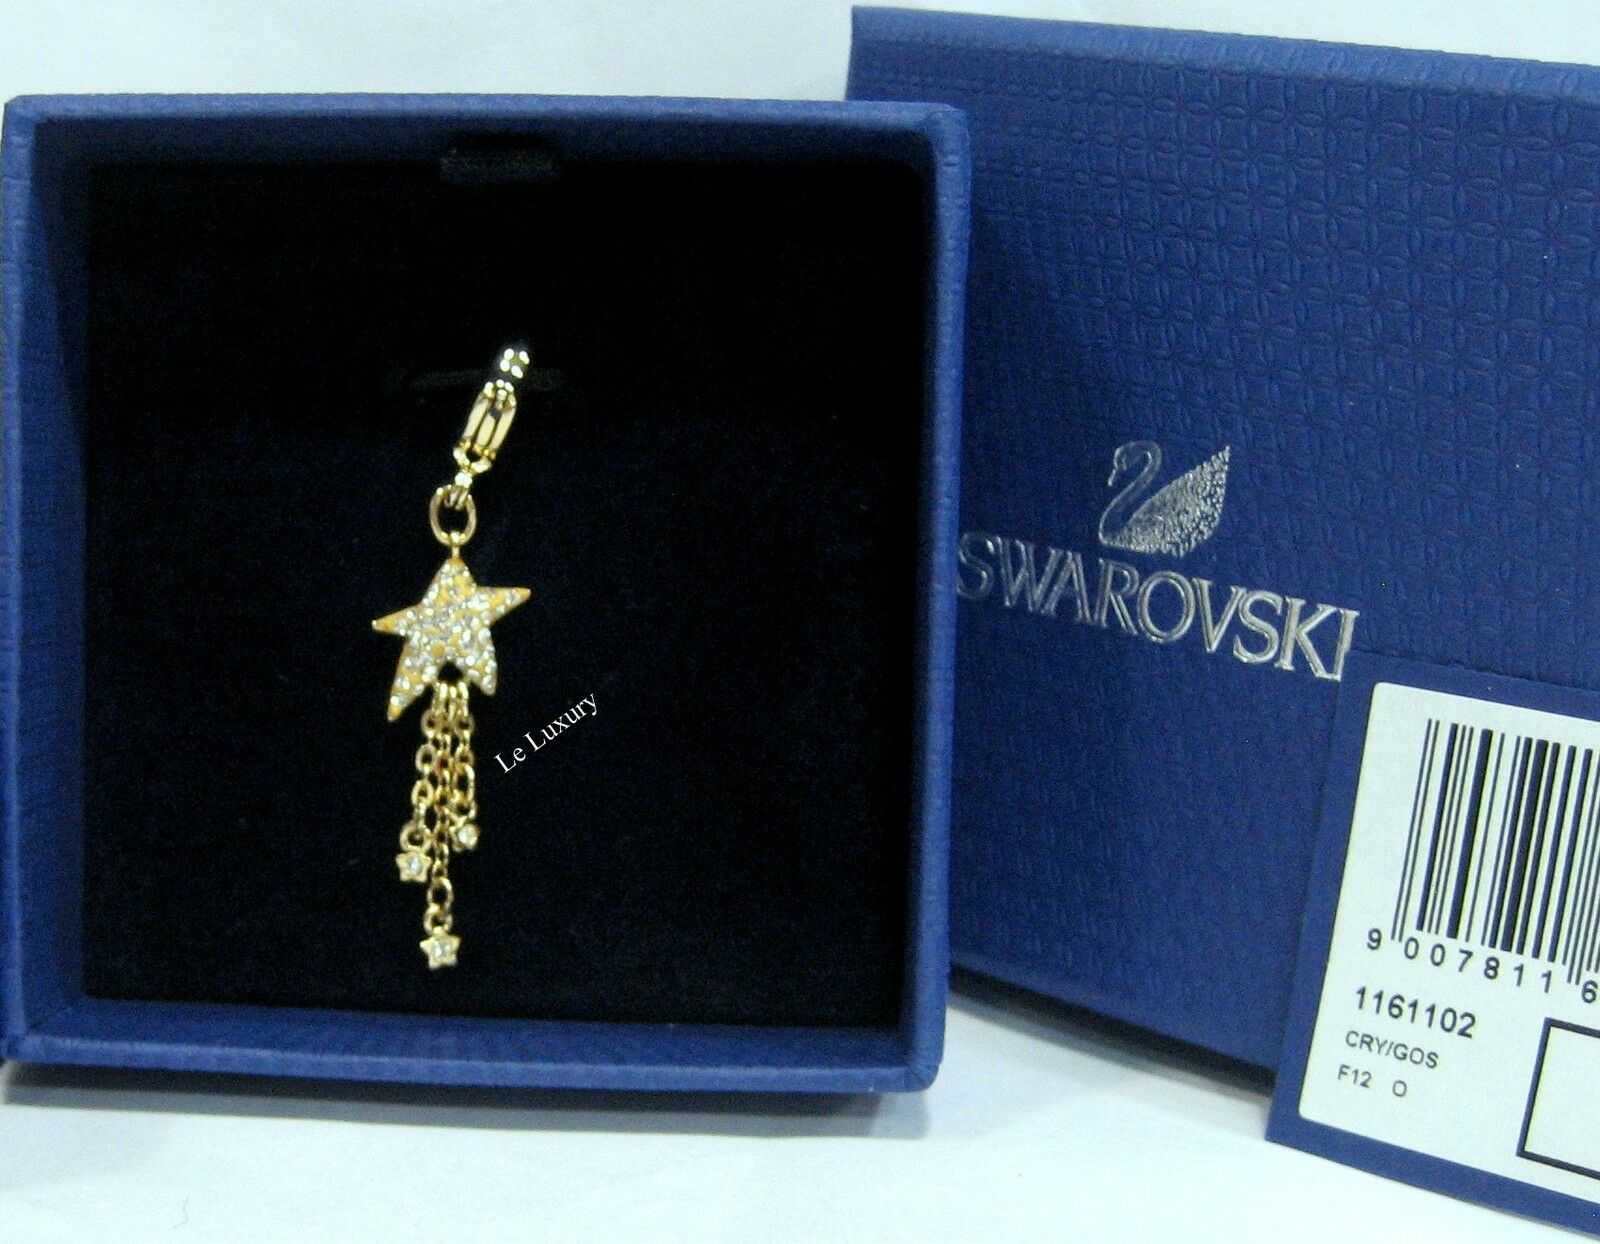 Swarovski Shooting Star Charm, Wishing gold-Plated Crystal Authentic MIB 1161102